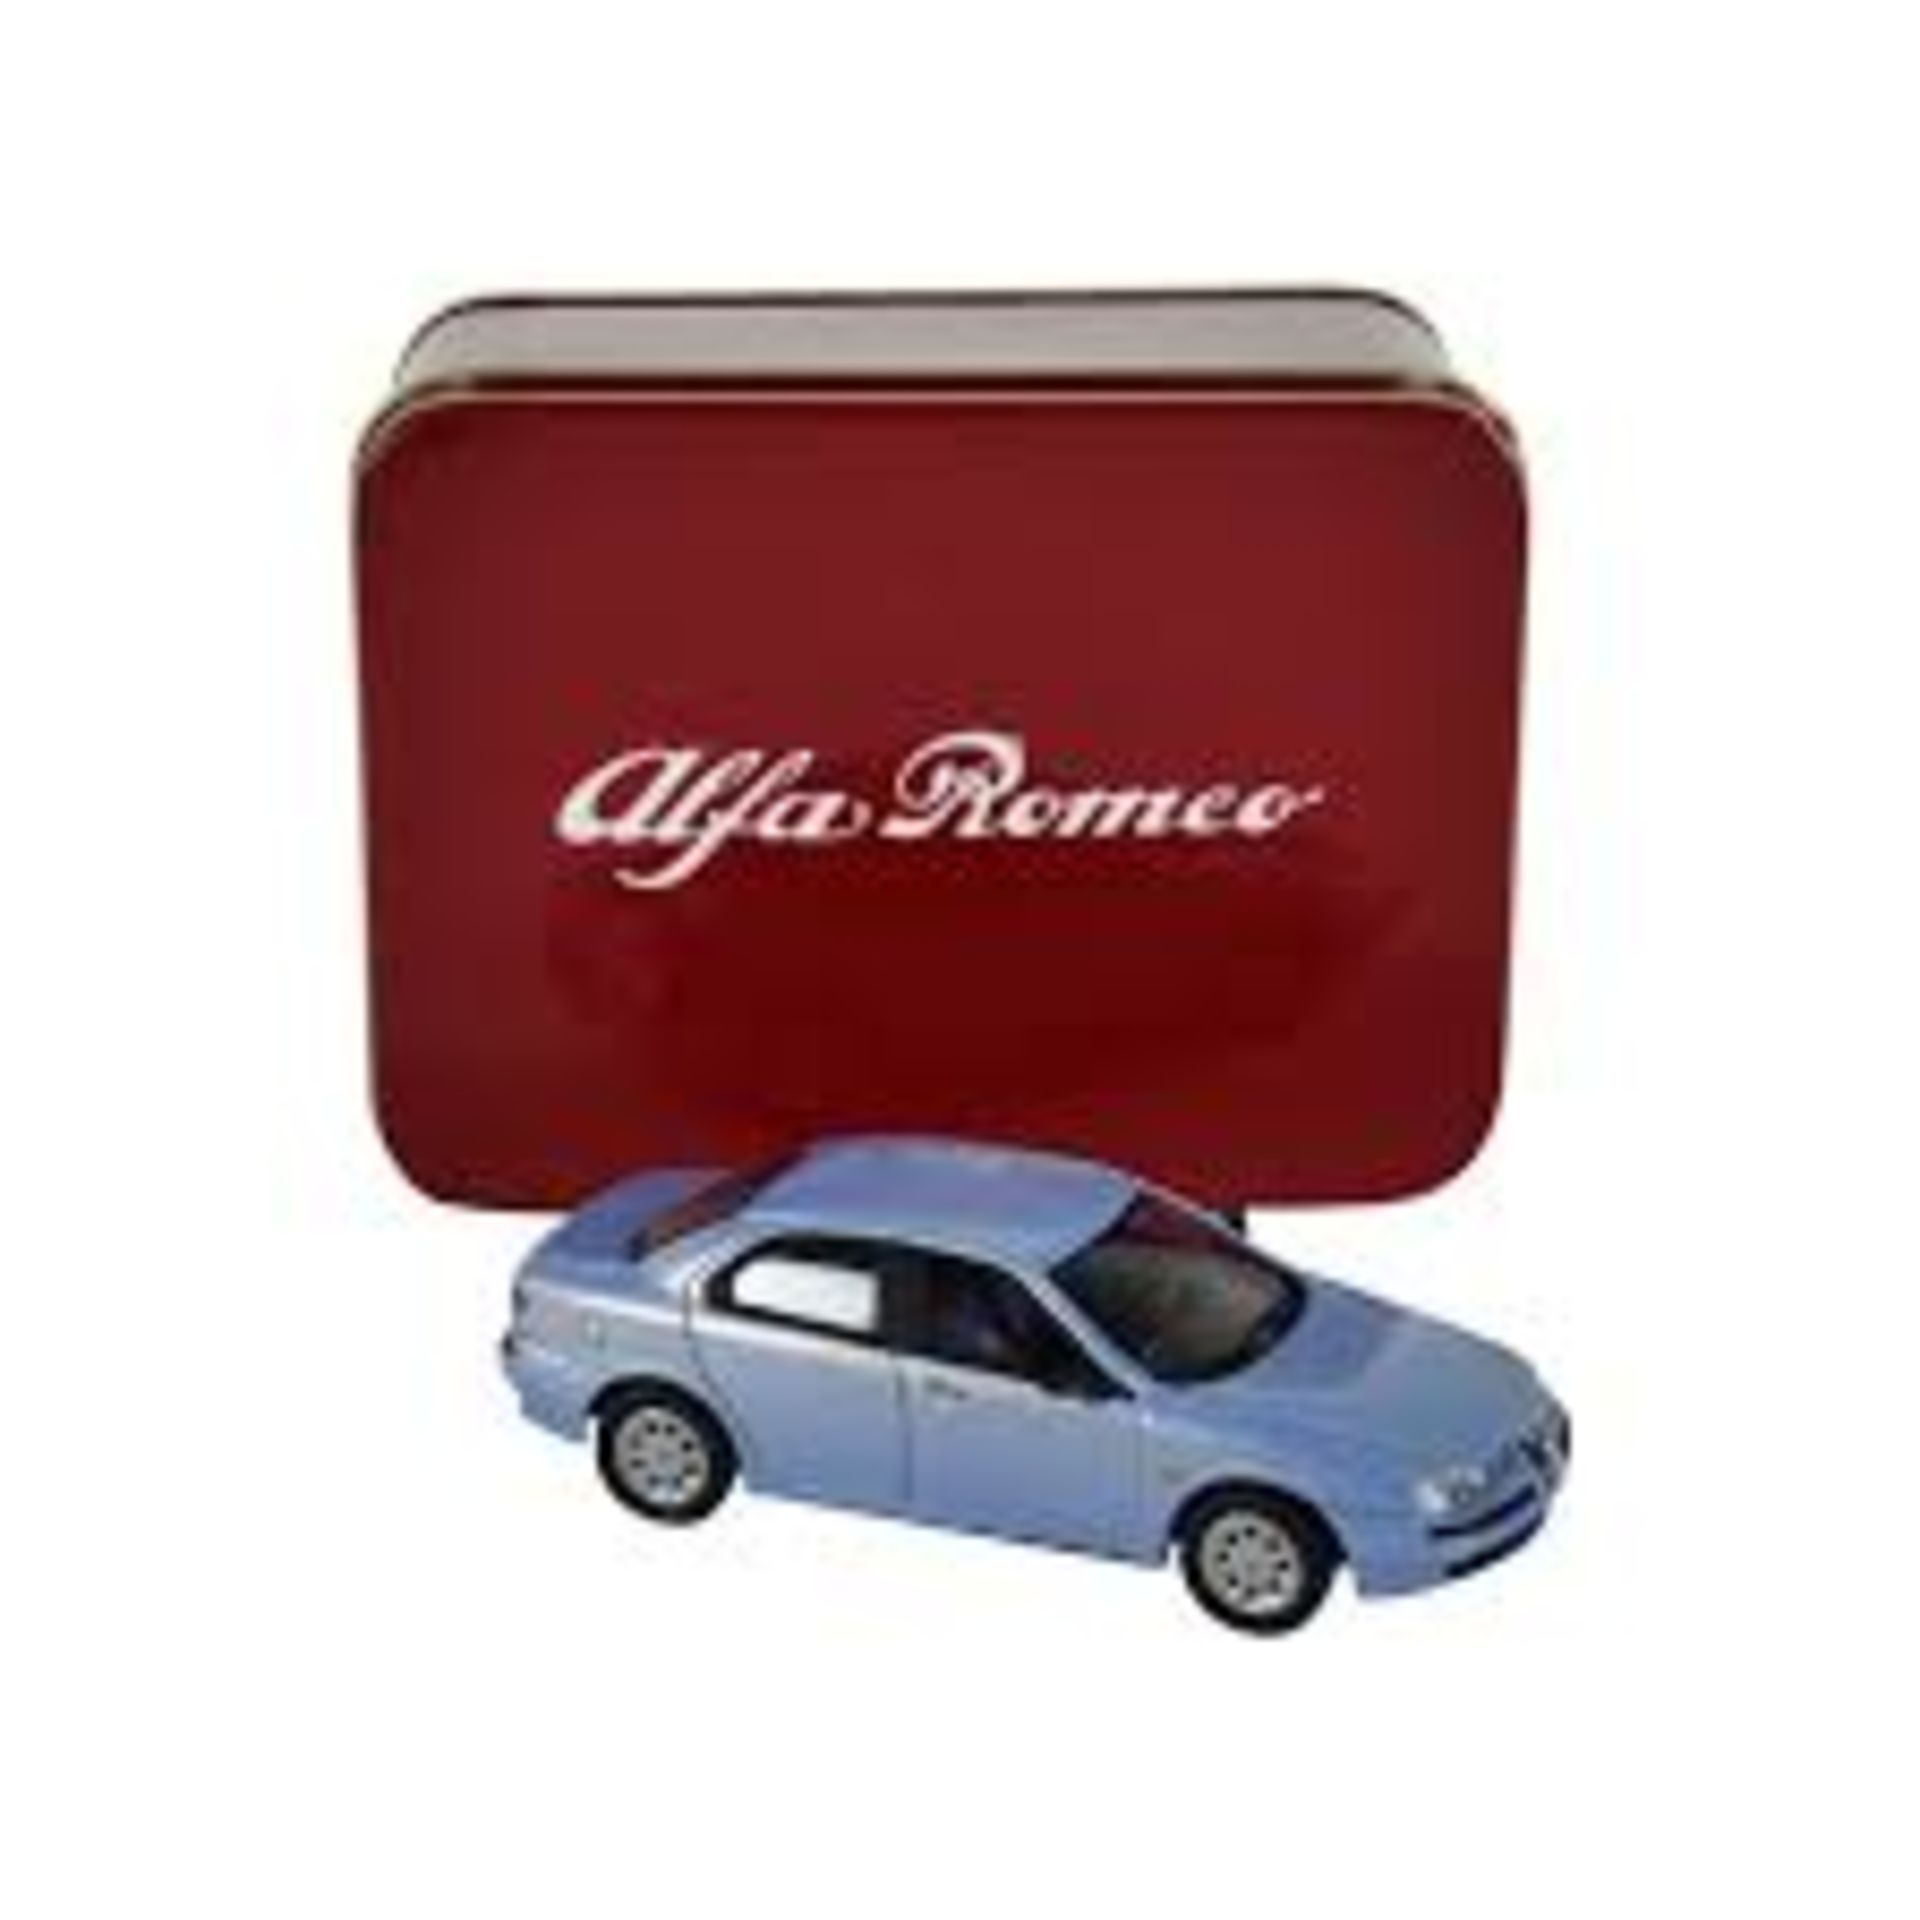 Lot 10362 - V Brand New 1/43 Diecast 1998 Alfa Romeo 156 - eBay Price £16.99